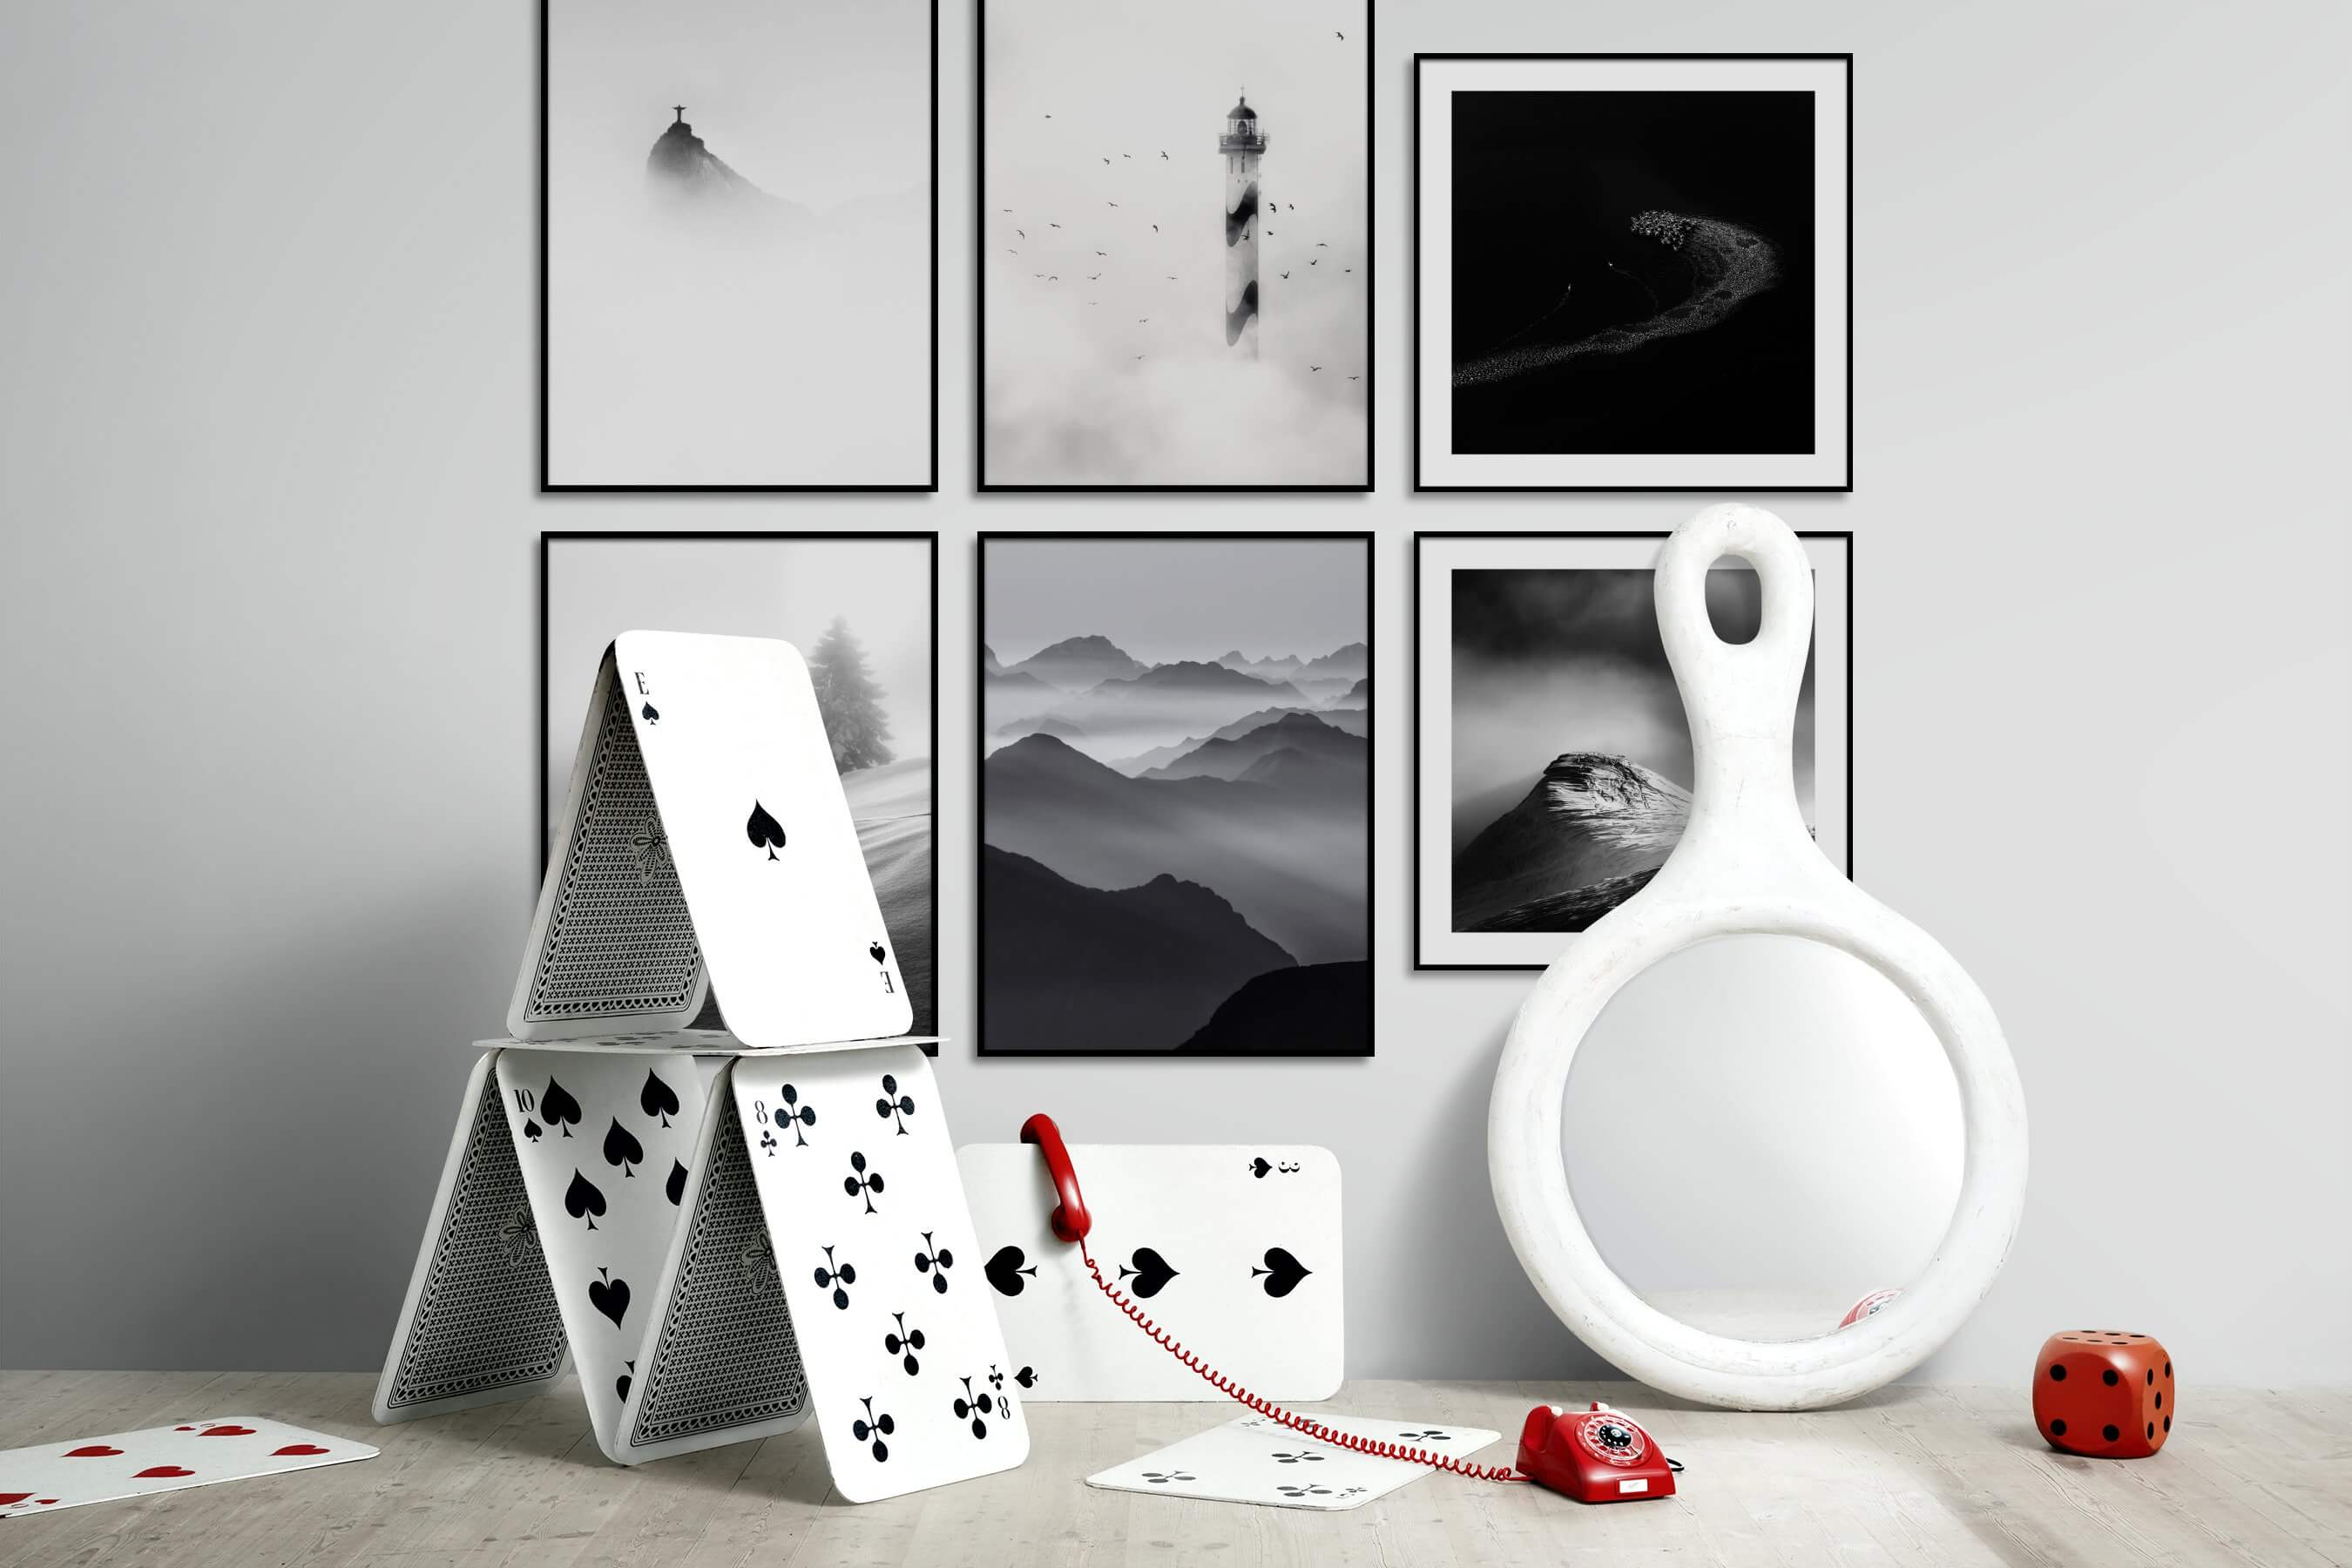 Gallery wall idea with six framed pictures arranged on a wall depicting Black & White, Bright Tones, For the Minimalist, Mindfulness, Beach & Water, Nature, Animals, and For the Moderate